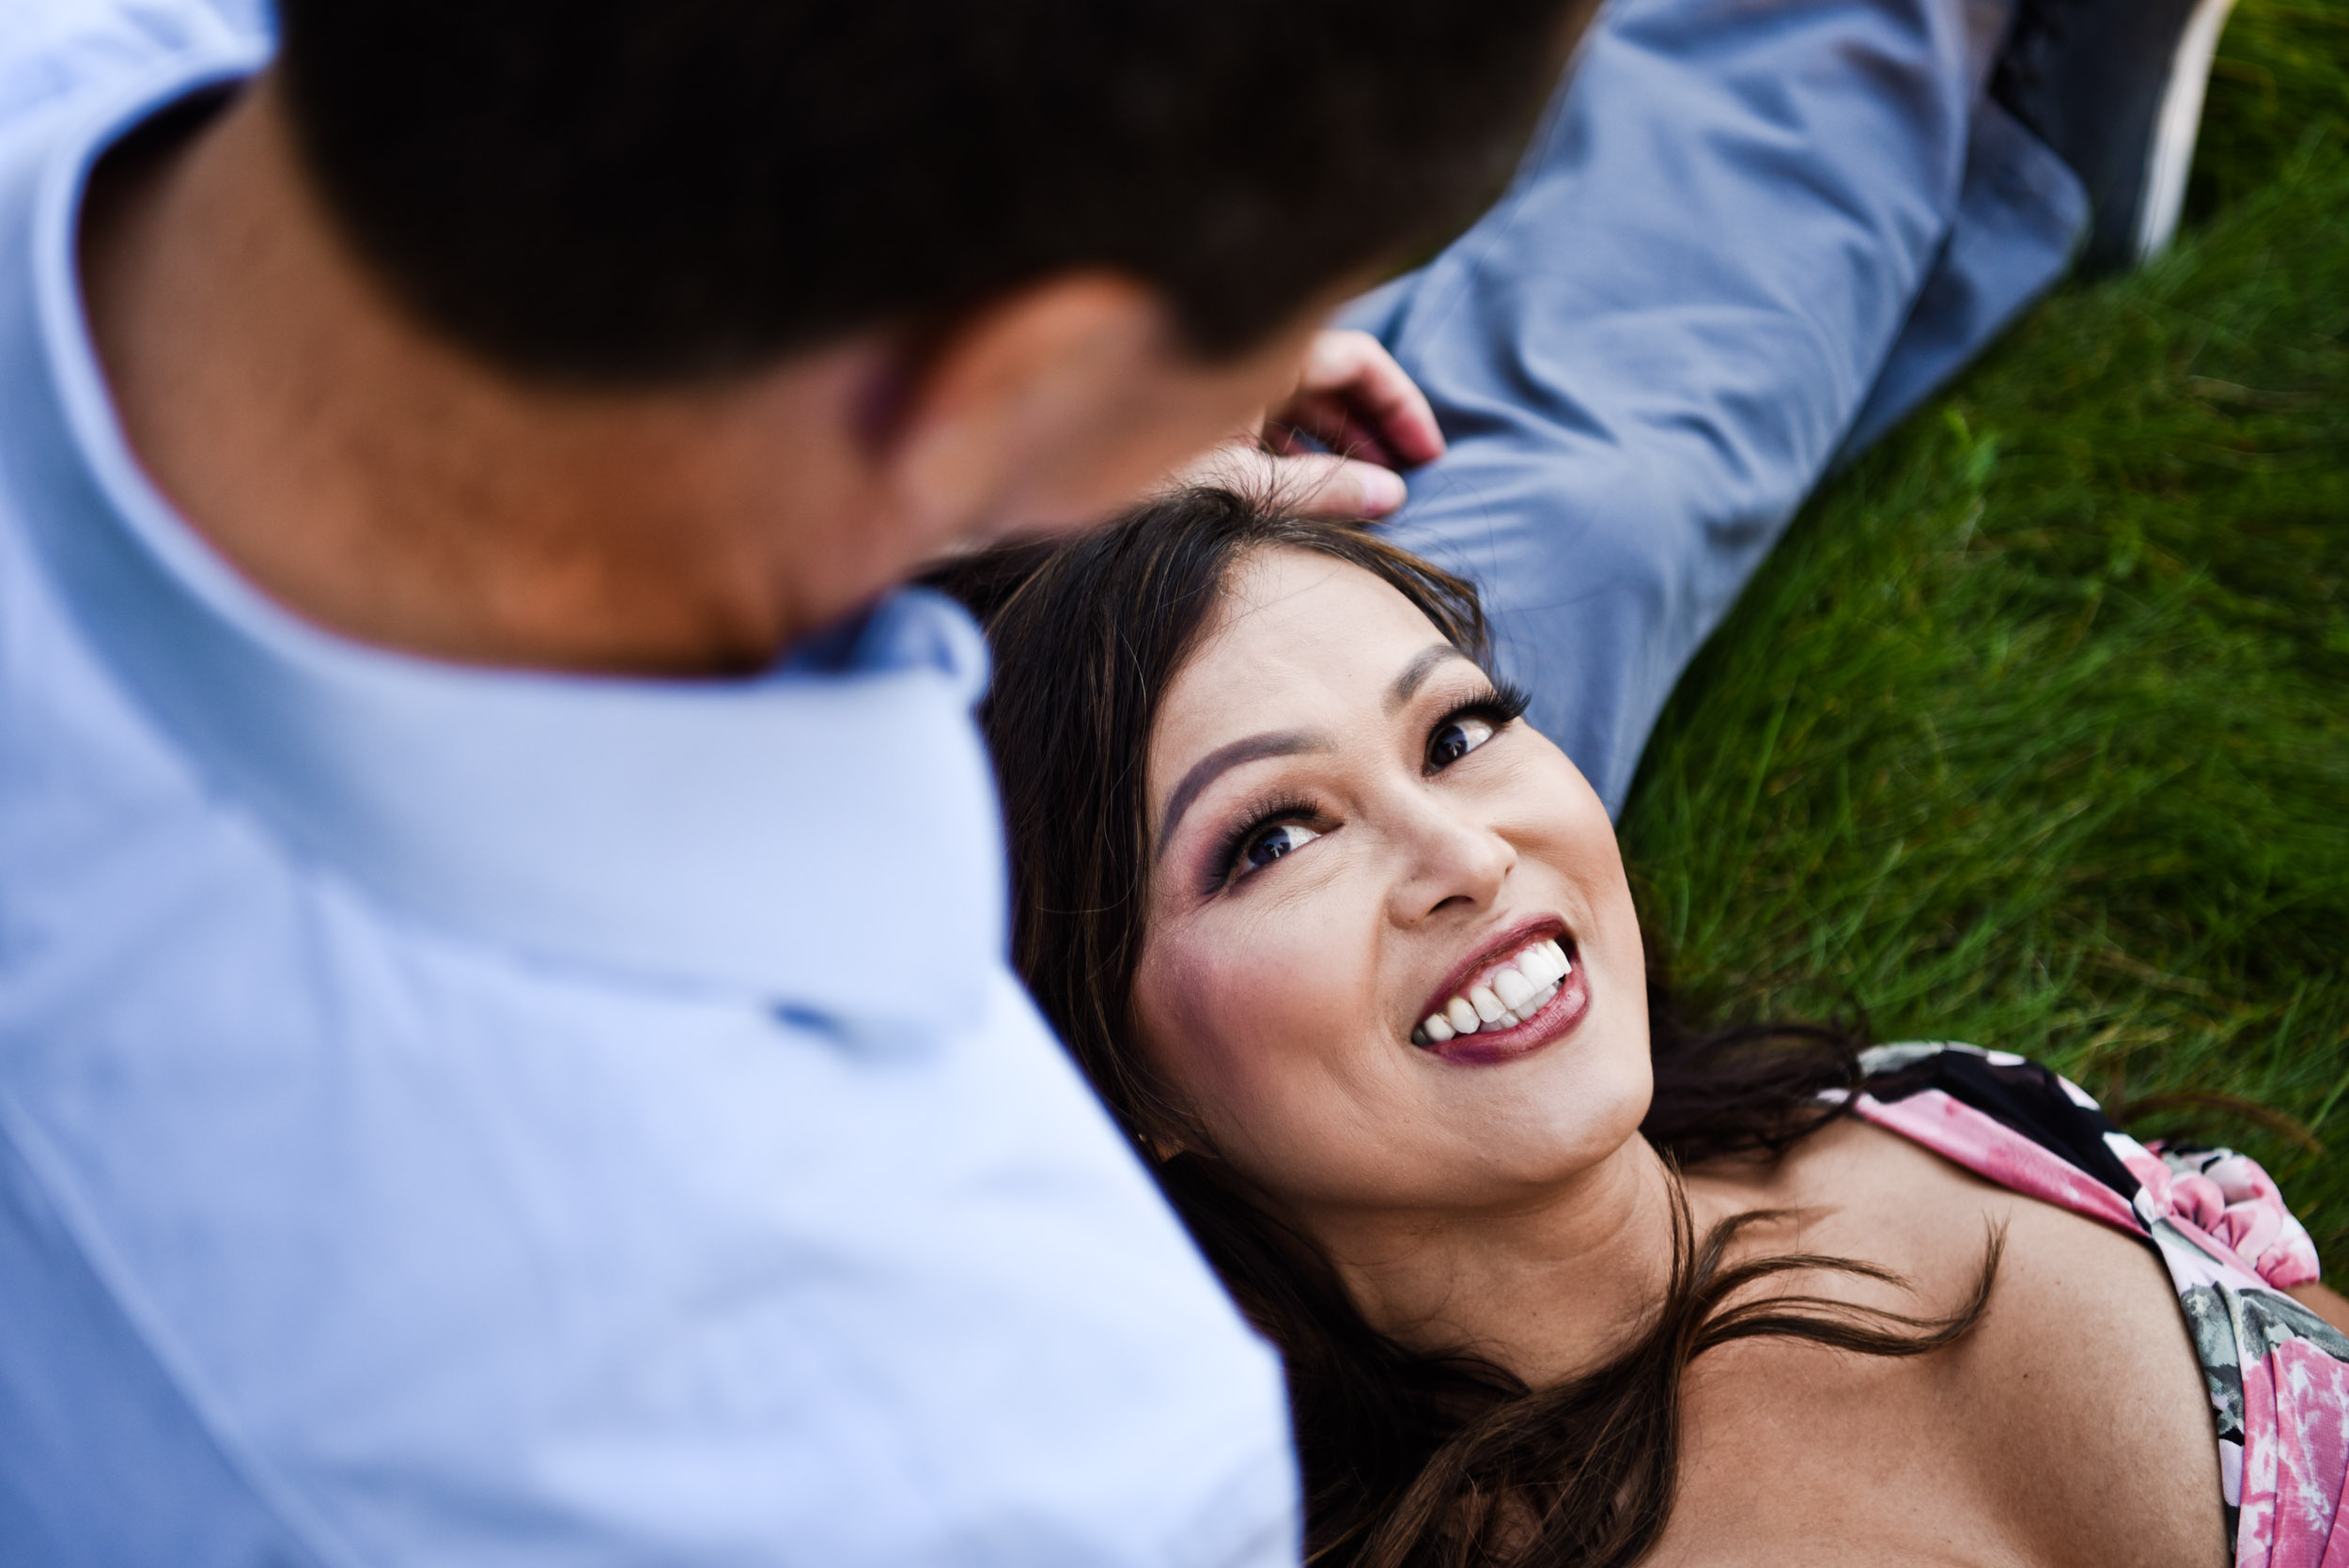 Woman gazing at husband lying on the grass in the park. Noguchi Sculptural Garden in Costa Mesa, California.